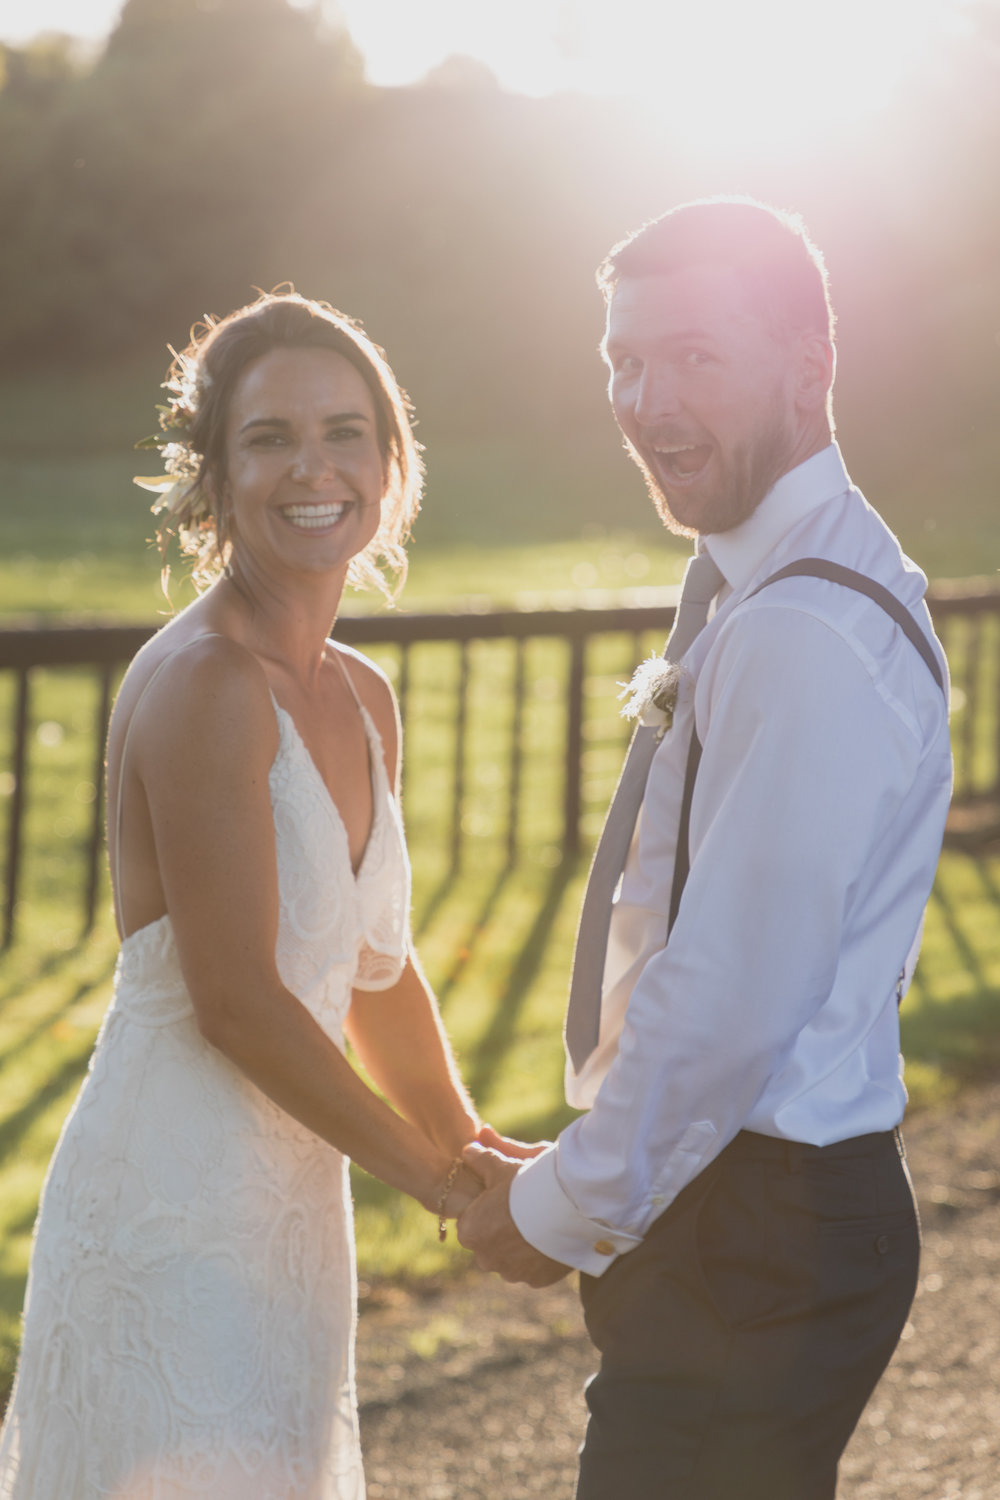 wedding-at-the-red-barn-new-zealand-wedding-photographer-bride-and-groom-laughing-together-playingjpg.jpg